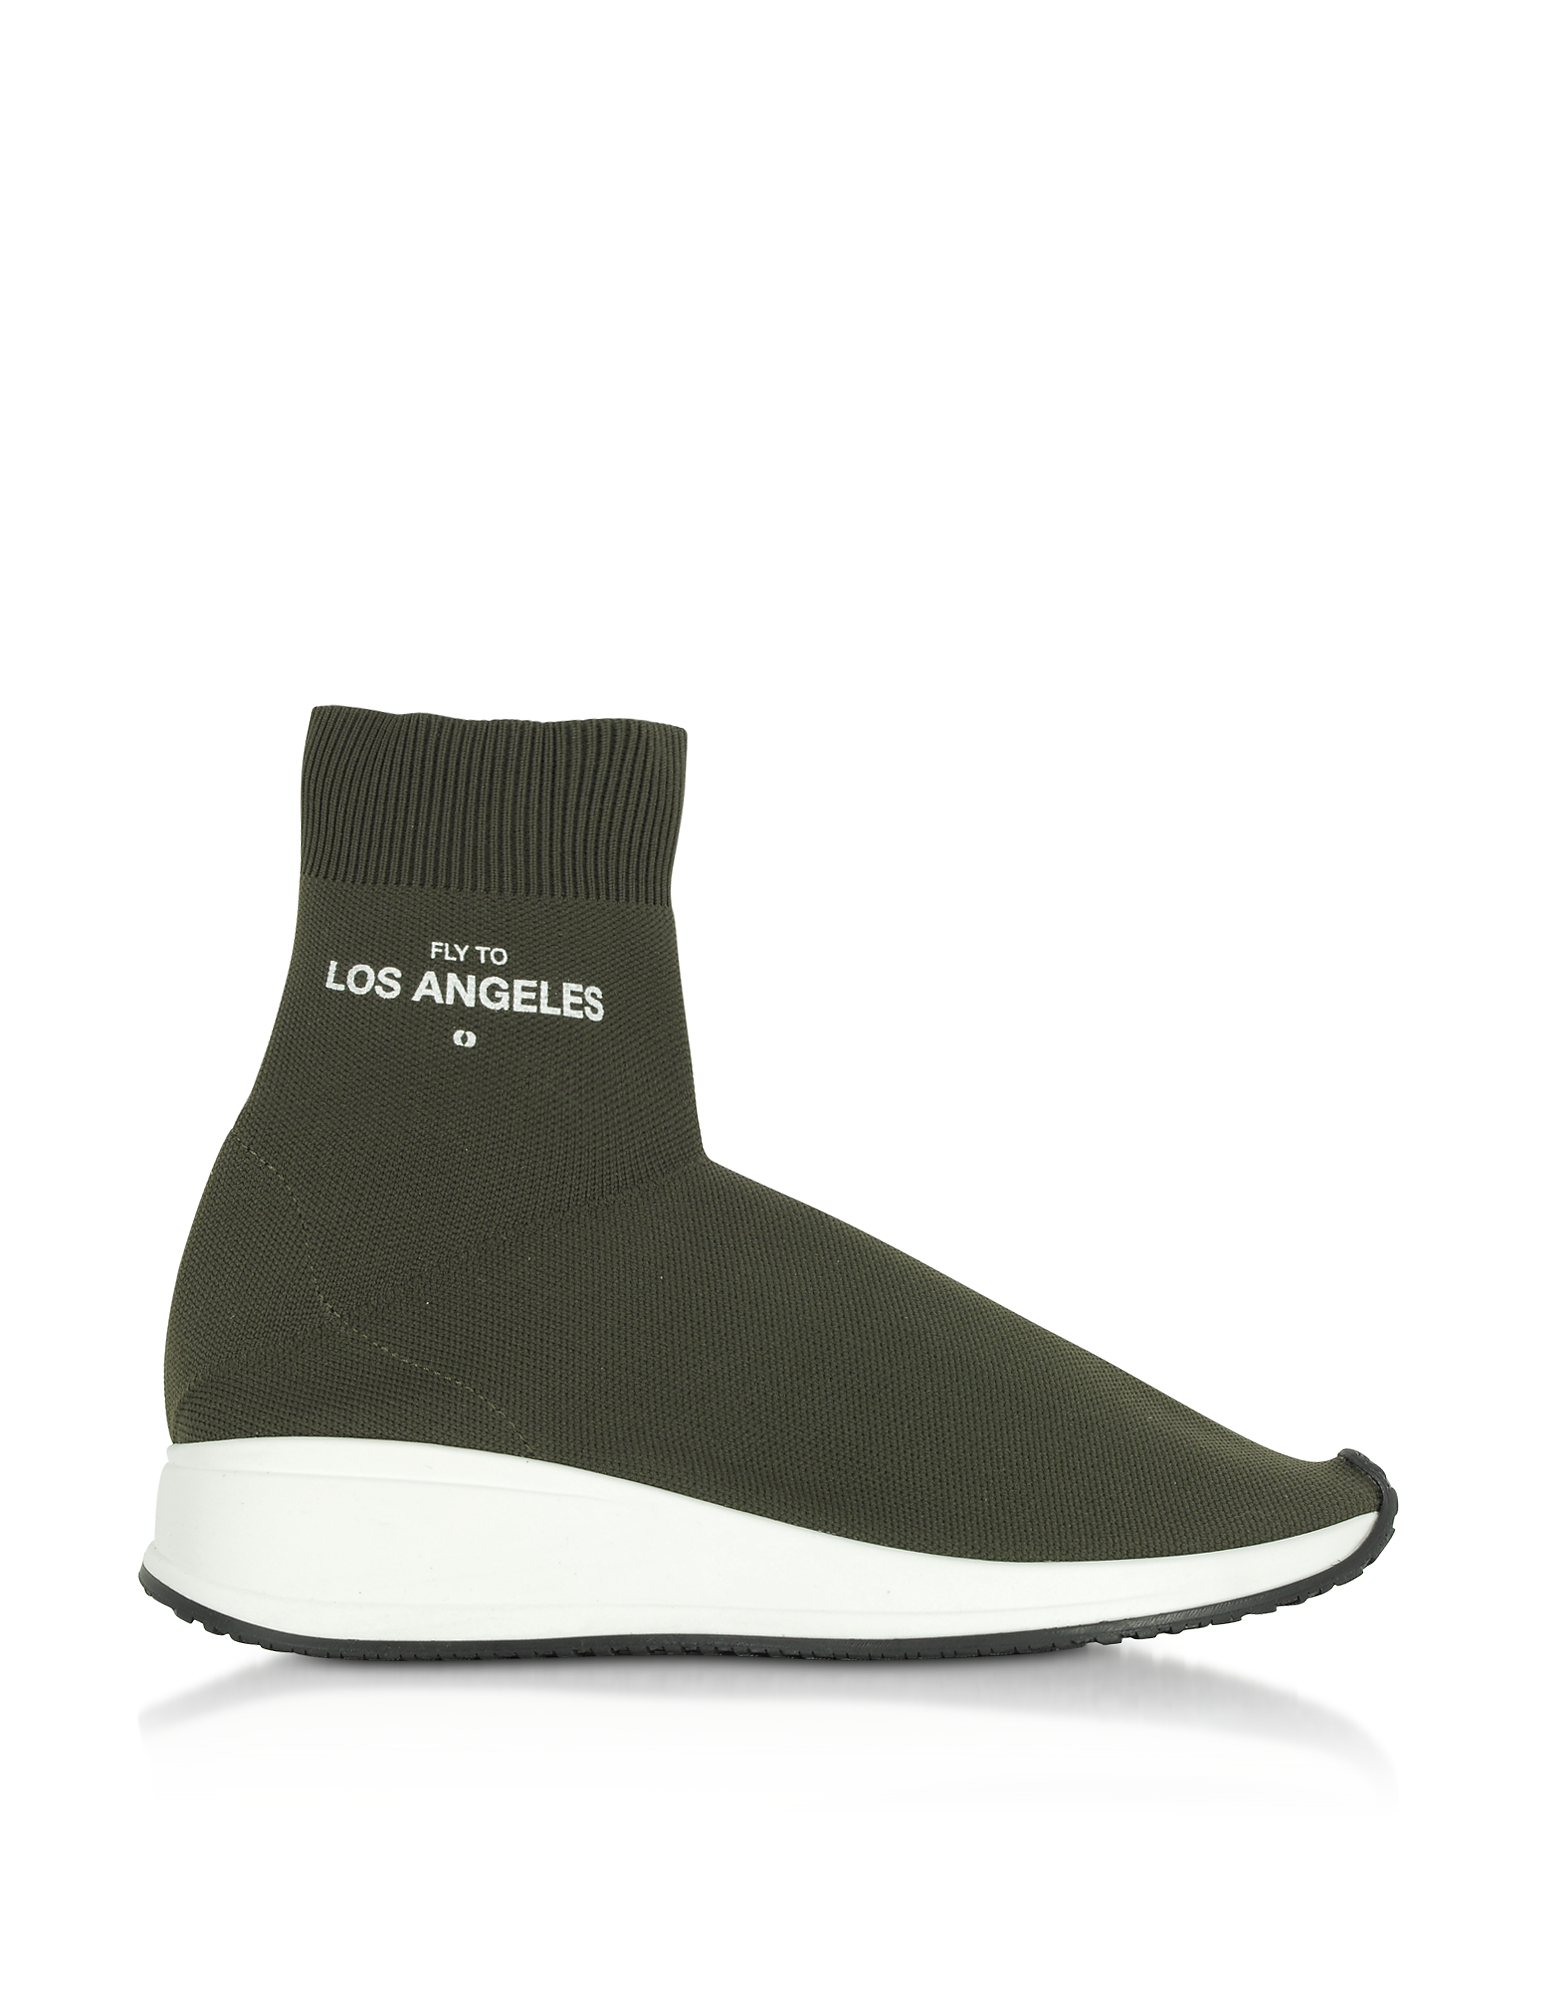 Joshua Sanders Shoes, Fly To Los Angeles Green Nylon Sock Unisex Sneakers